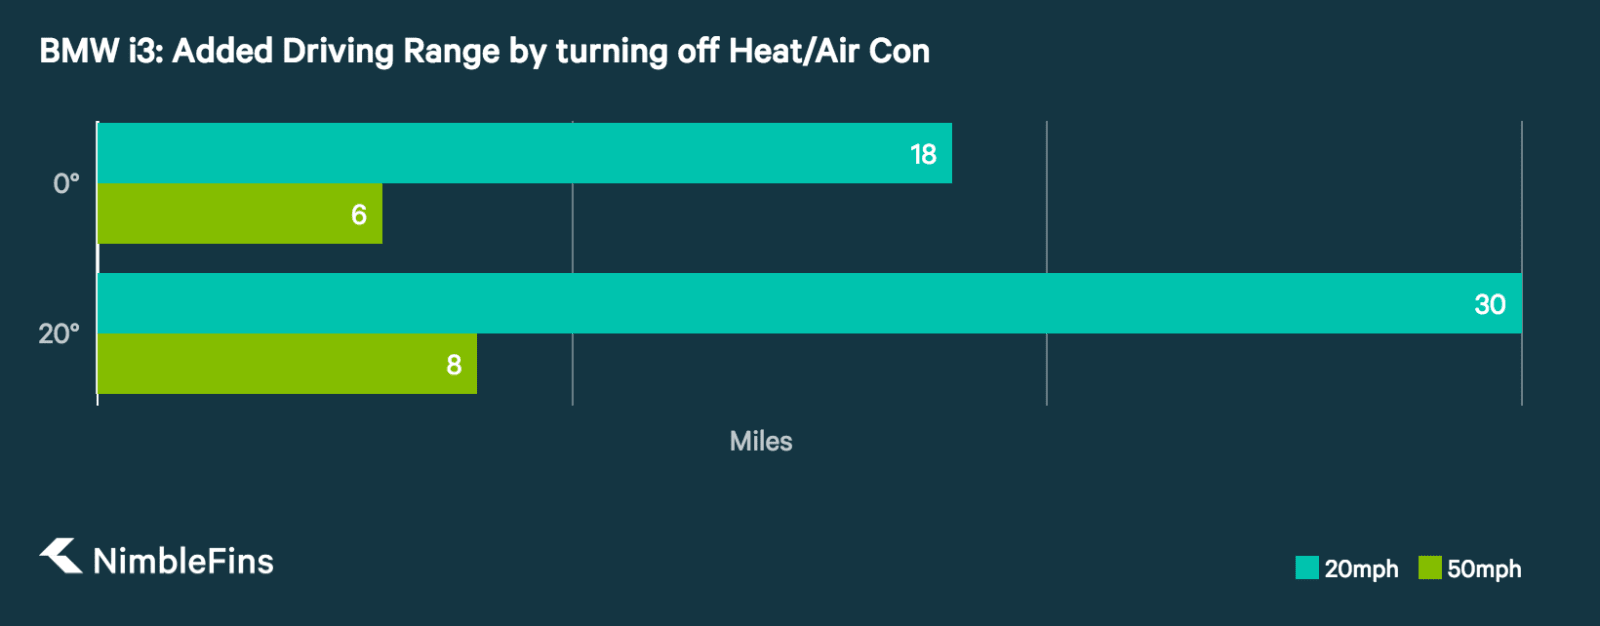 chart showing how heat and Air Con impact an EV's driving range